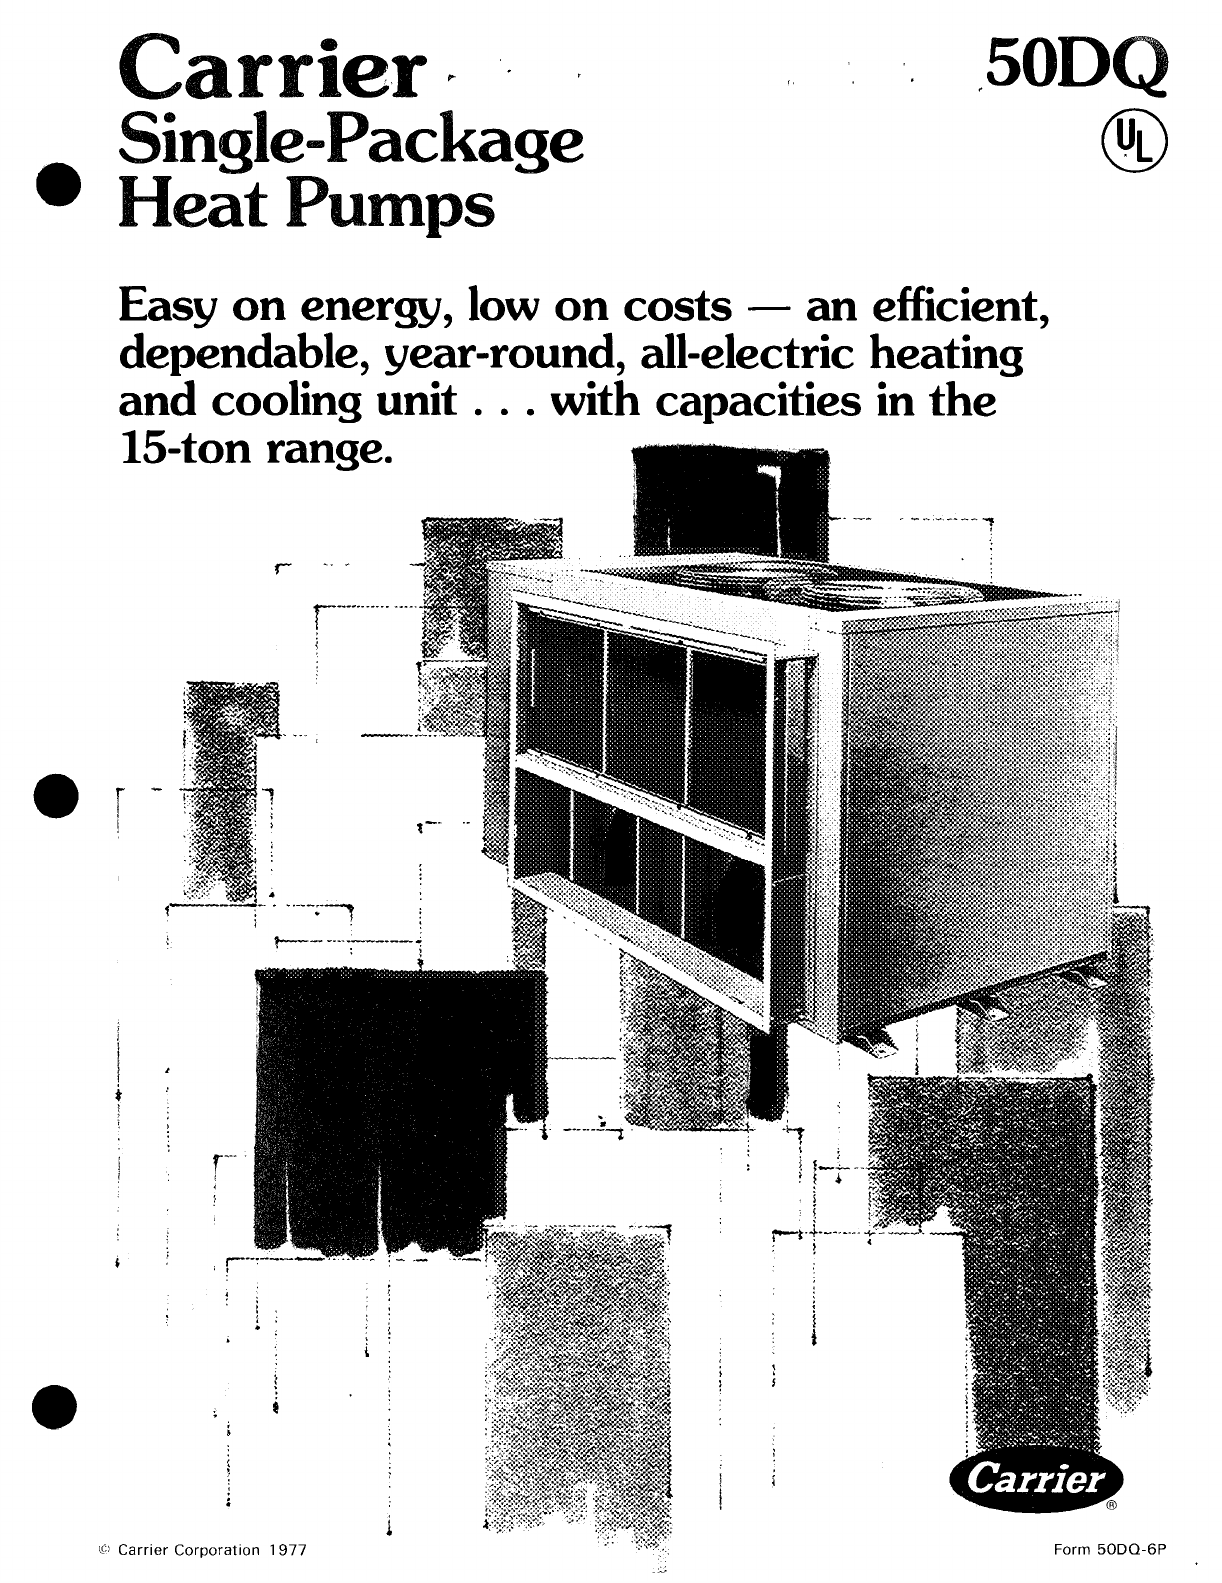 carrier heat pump 50dq user guide manualsonline com rh homeappliance manualsonline com carrier heat pump operation manual carrier infinity heat pump owner's manual